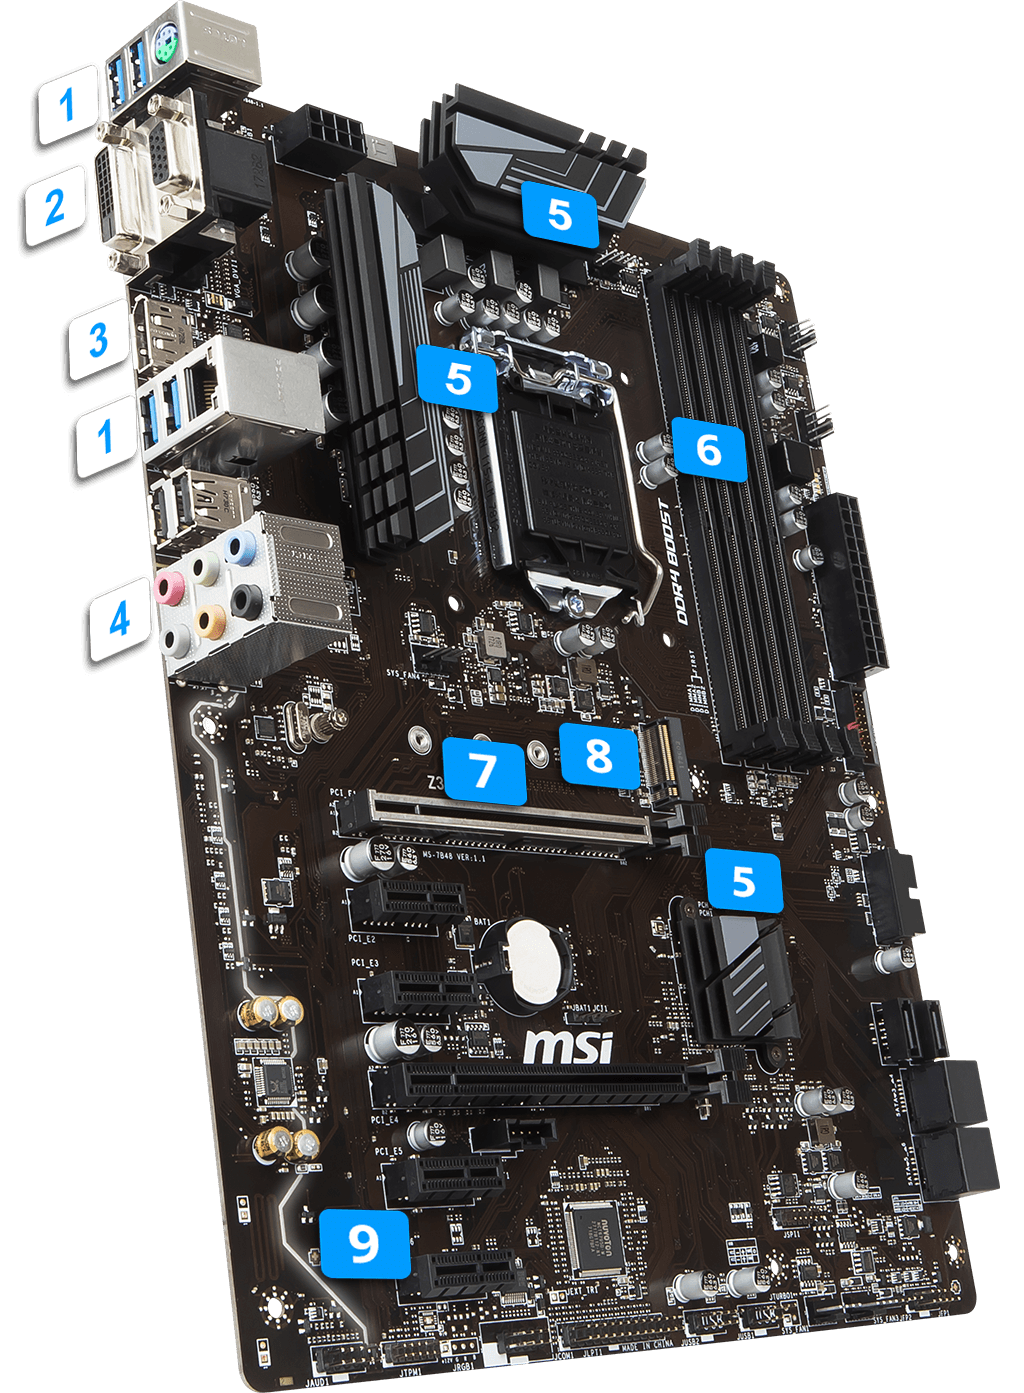 MSI Z370 A PRO overview